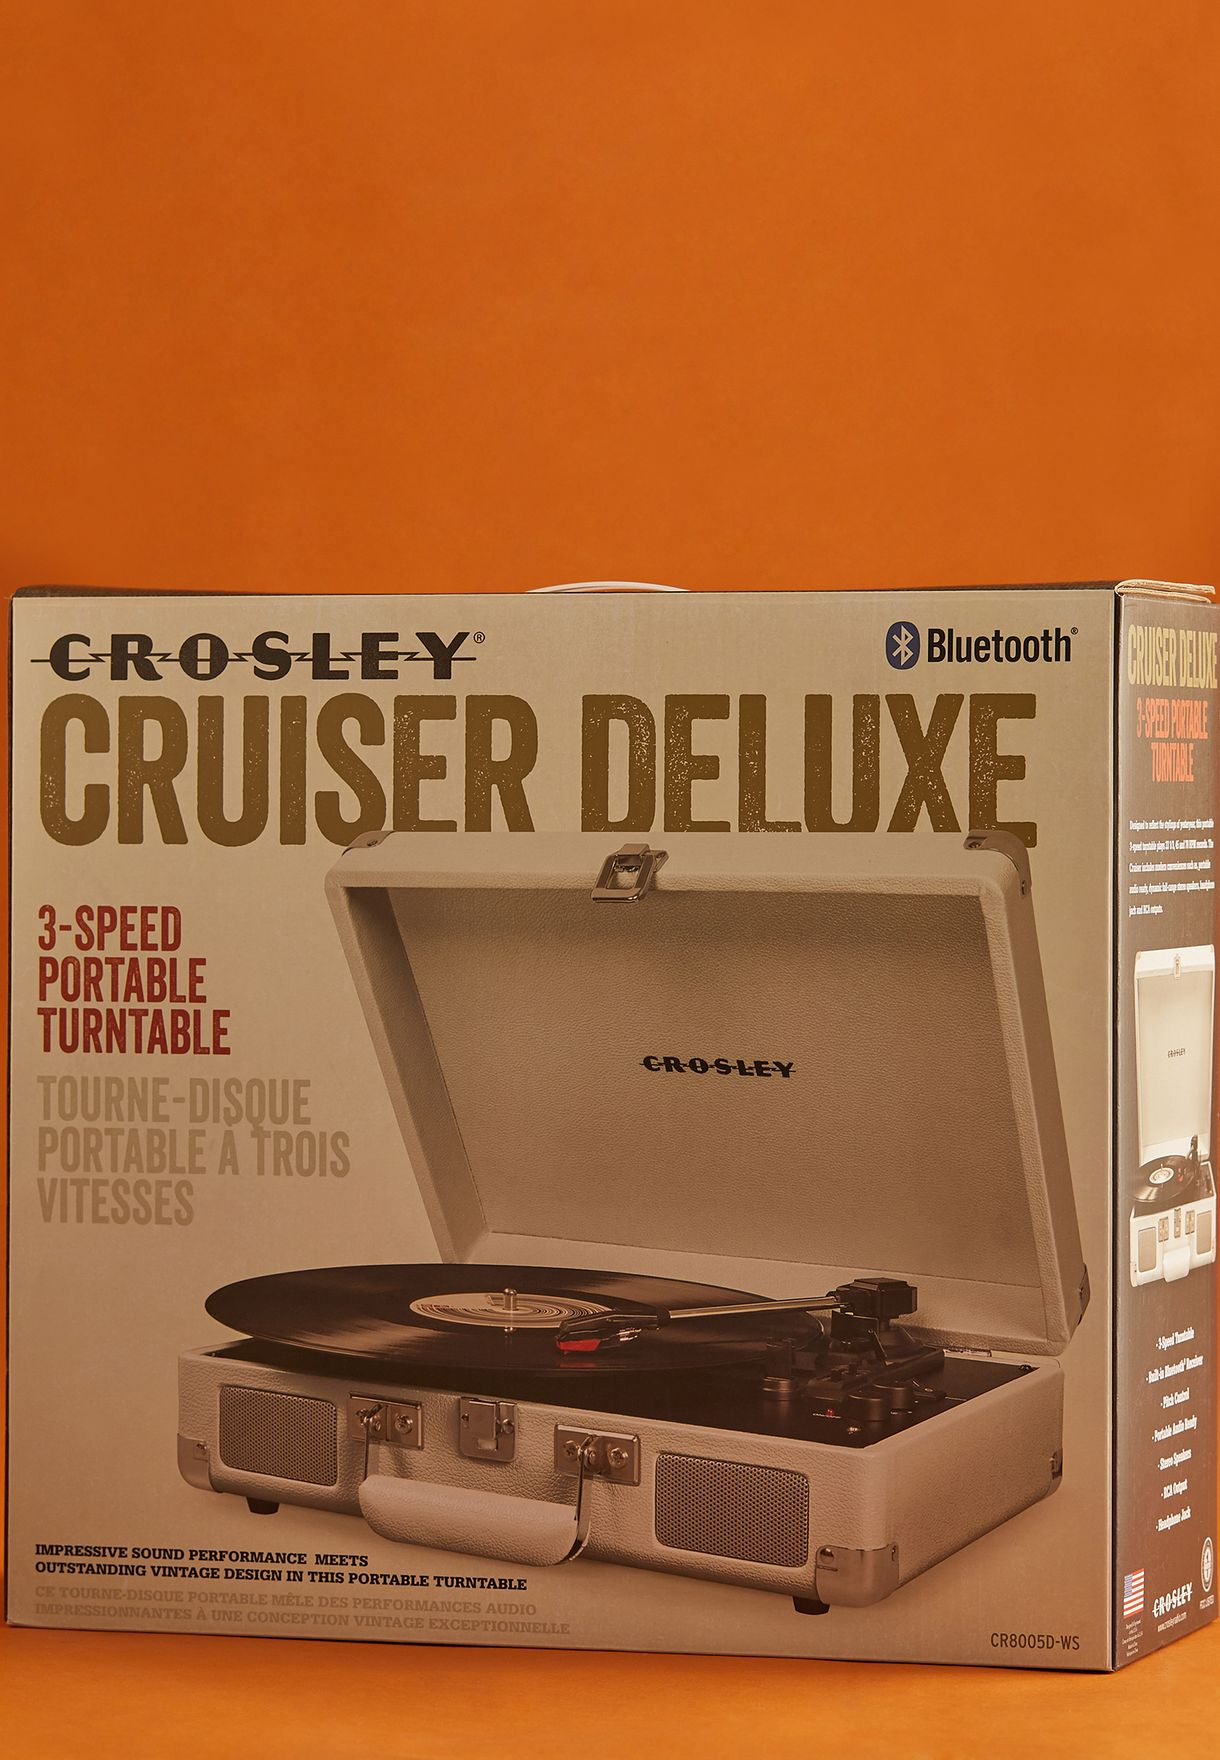 Cruiser Deluxe Portable Turntable